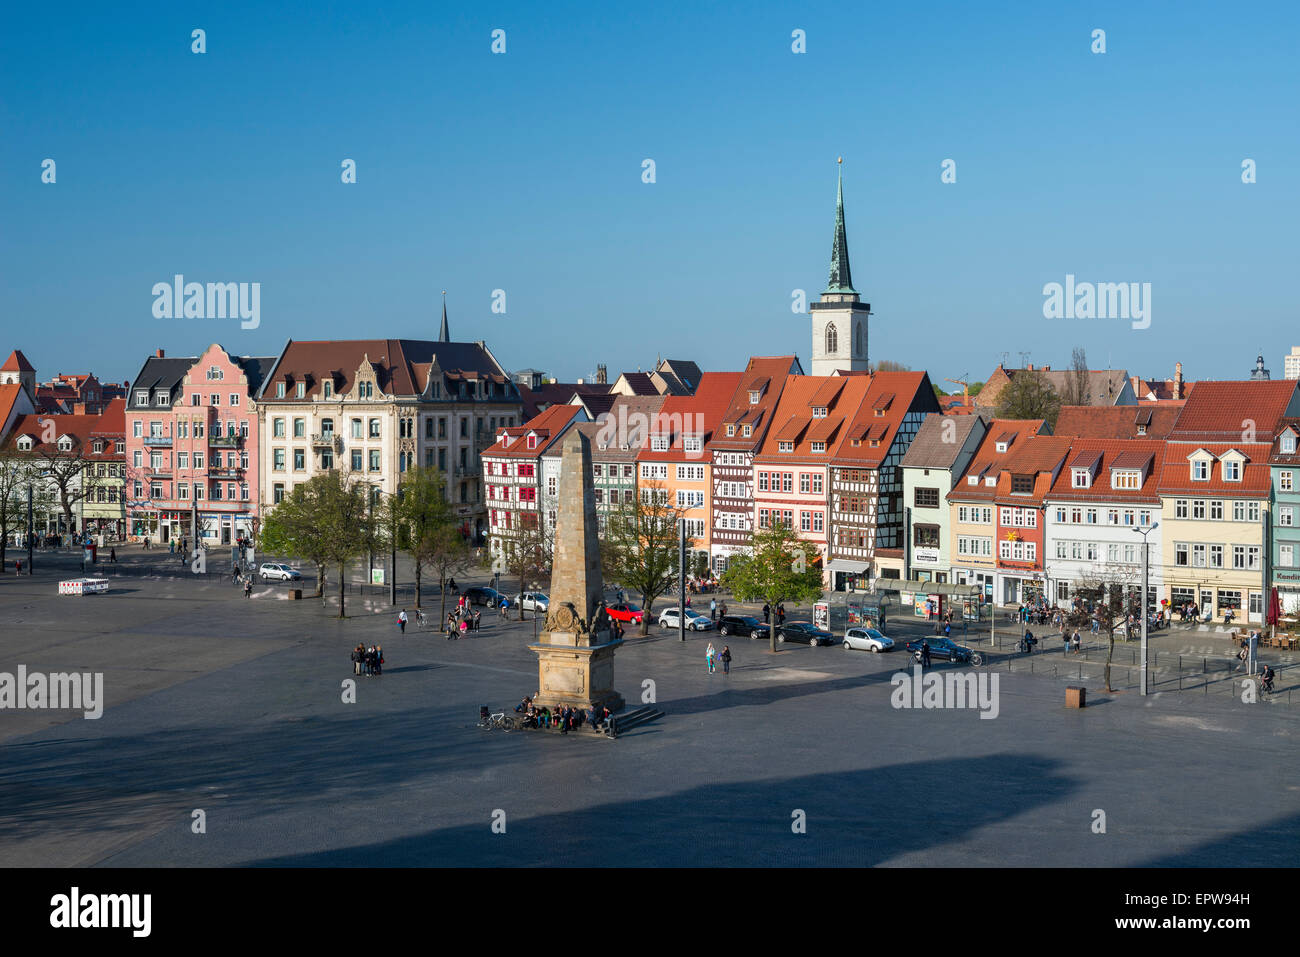 Cathedral Square with obelisk and row of medieval houses, historic centre, Erfurt, Thuringia, Germany - Stock Image